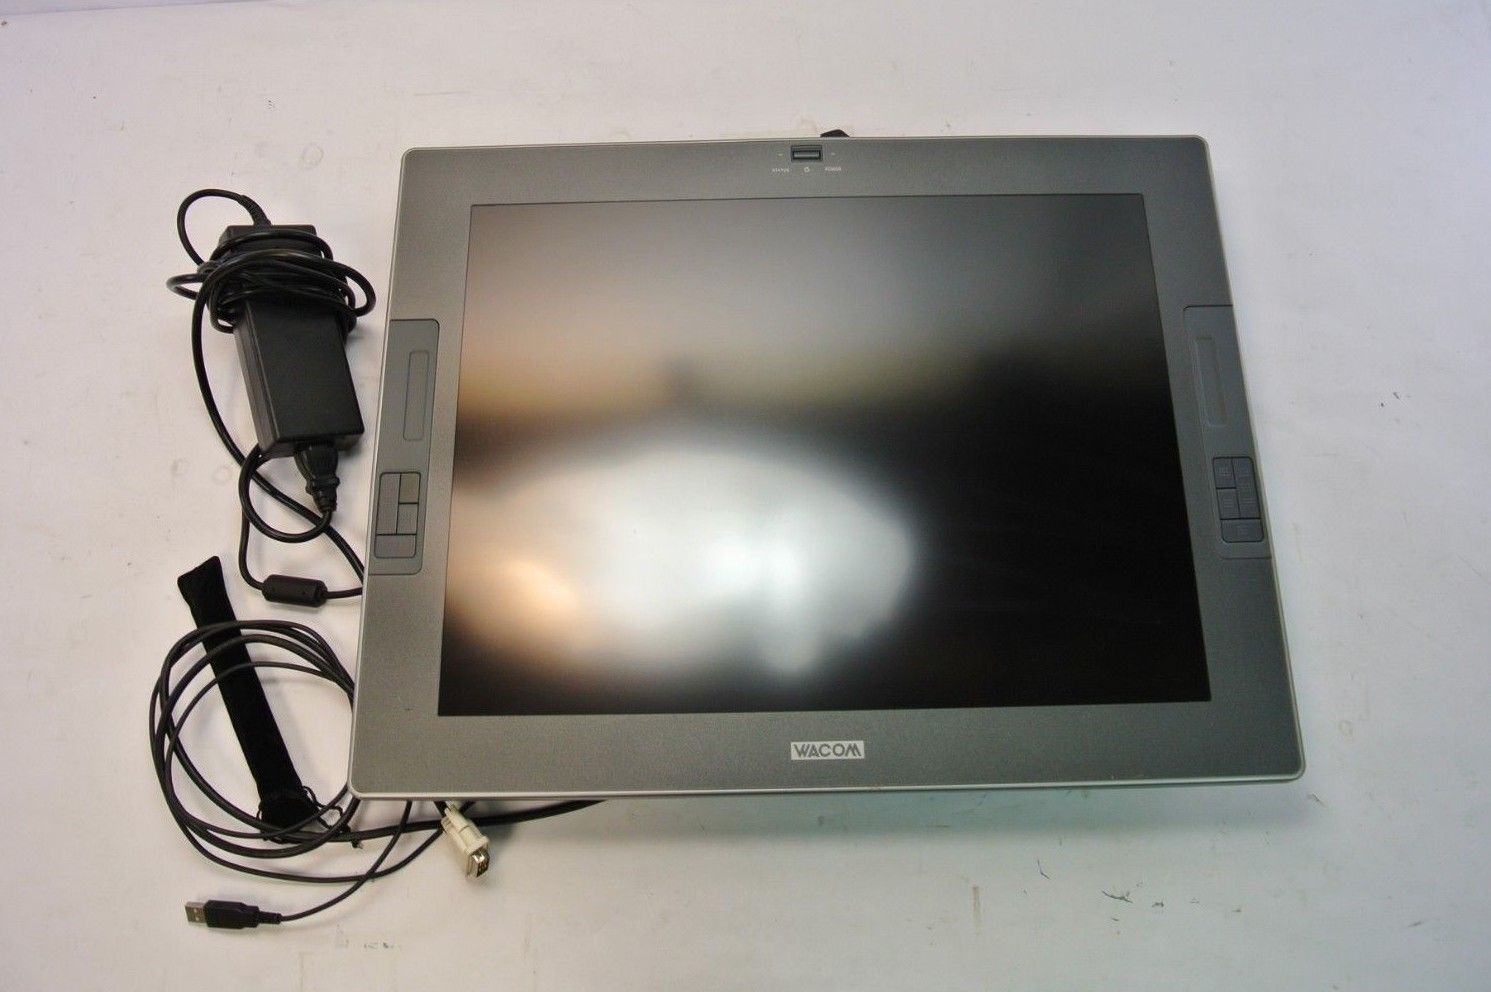 Wacom Cintiq 21UX Graphic Tablet Display, and 11 similar items